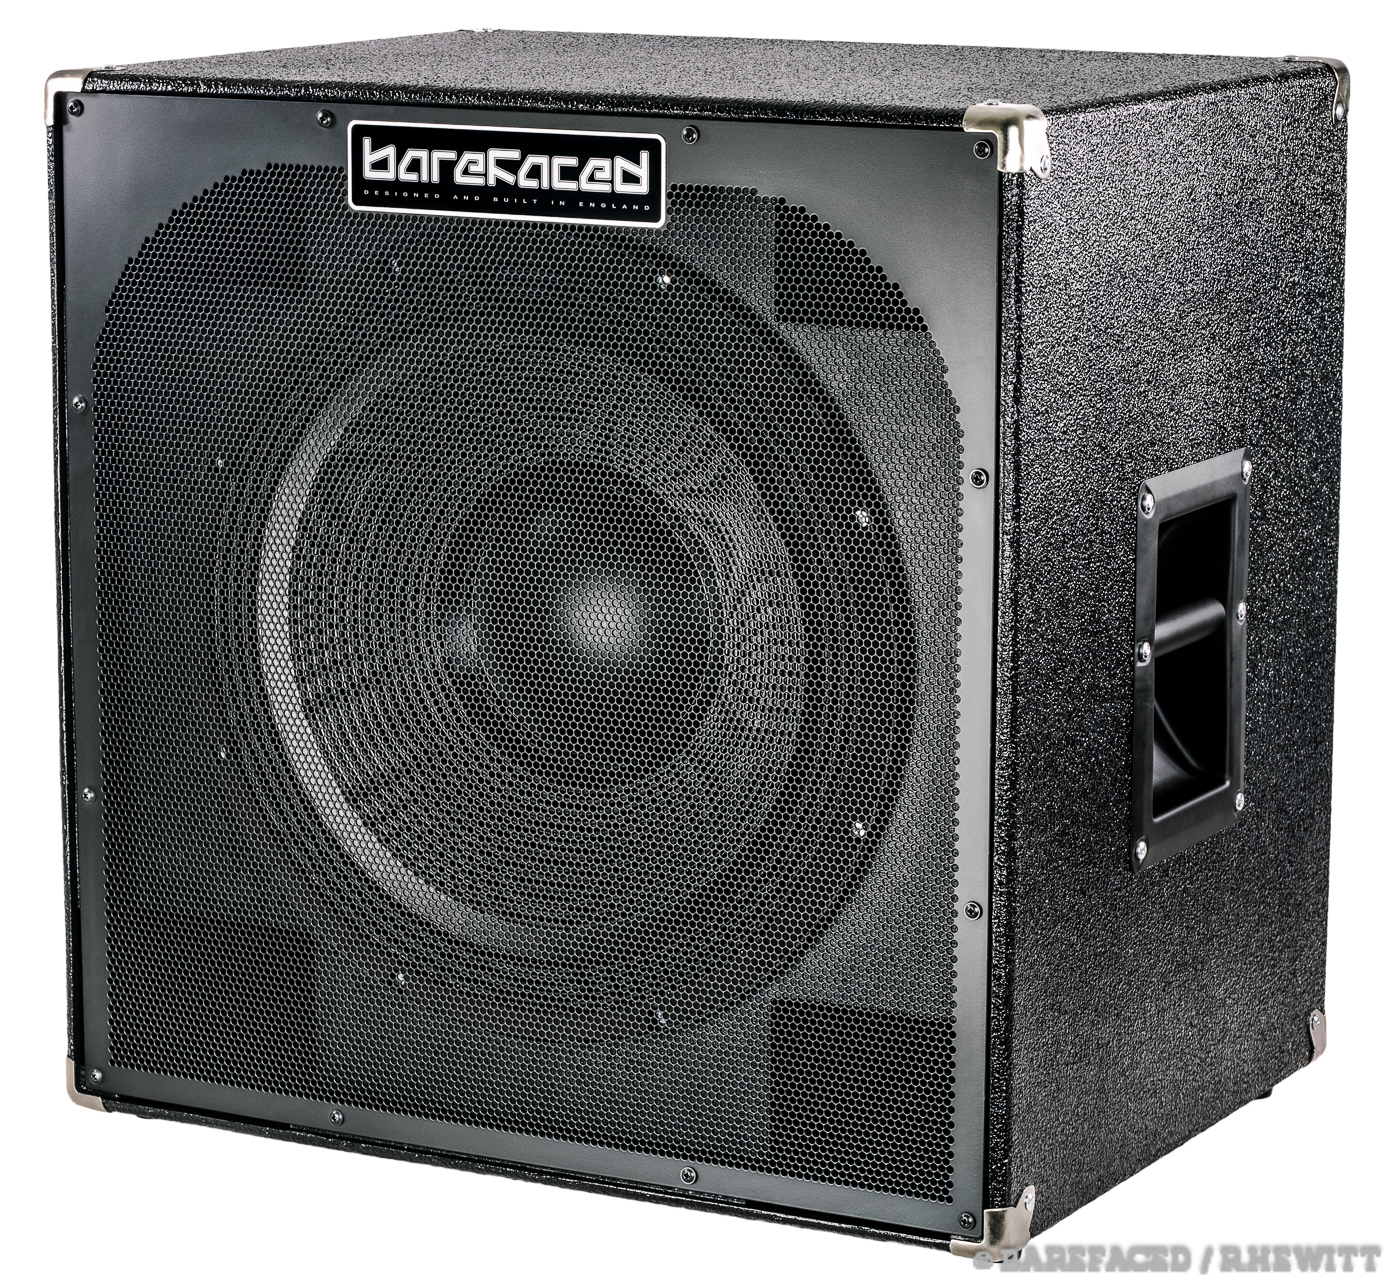 Barefaced Bass Lf1400 Ultra High Output Active Subwoofer Guitar Or Music Amplifier Home Stereo Powered